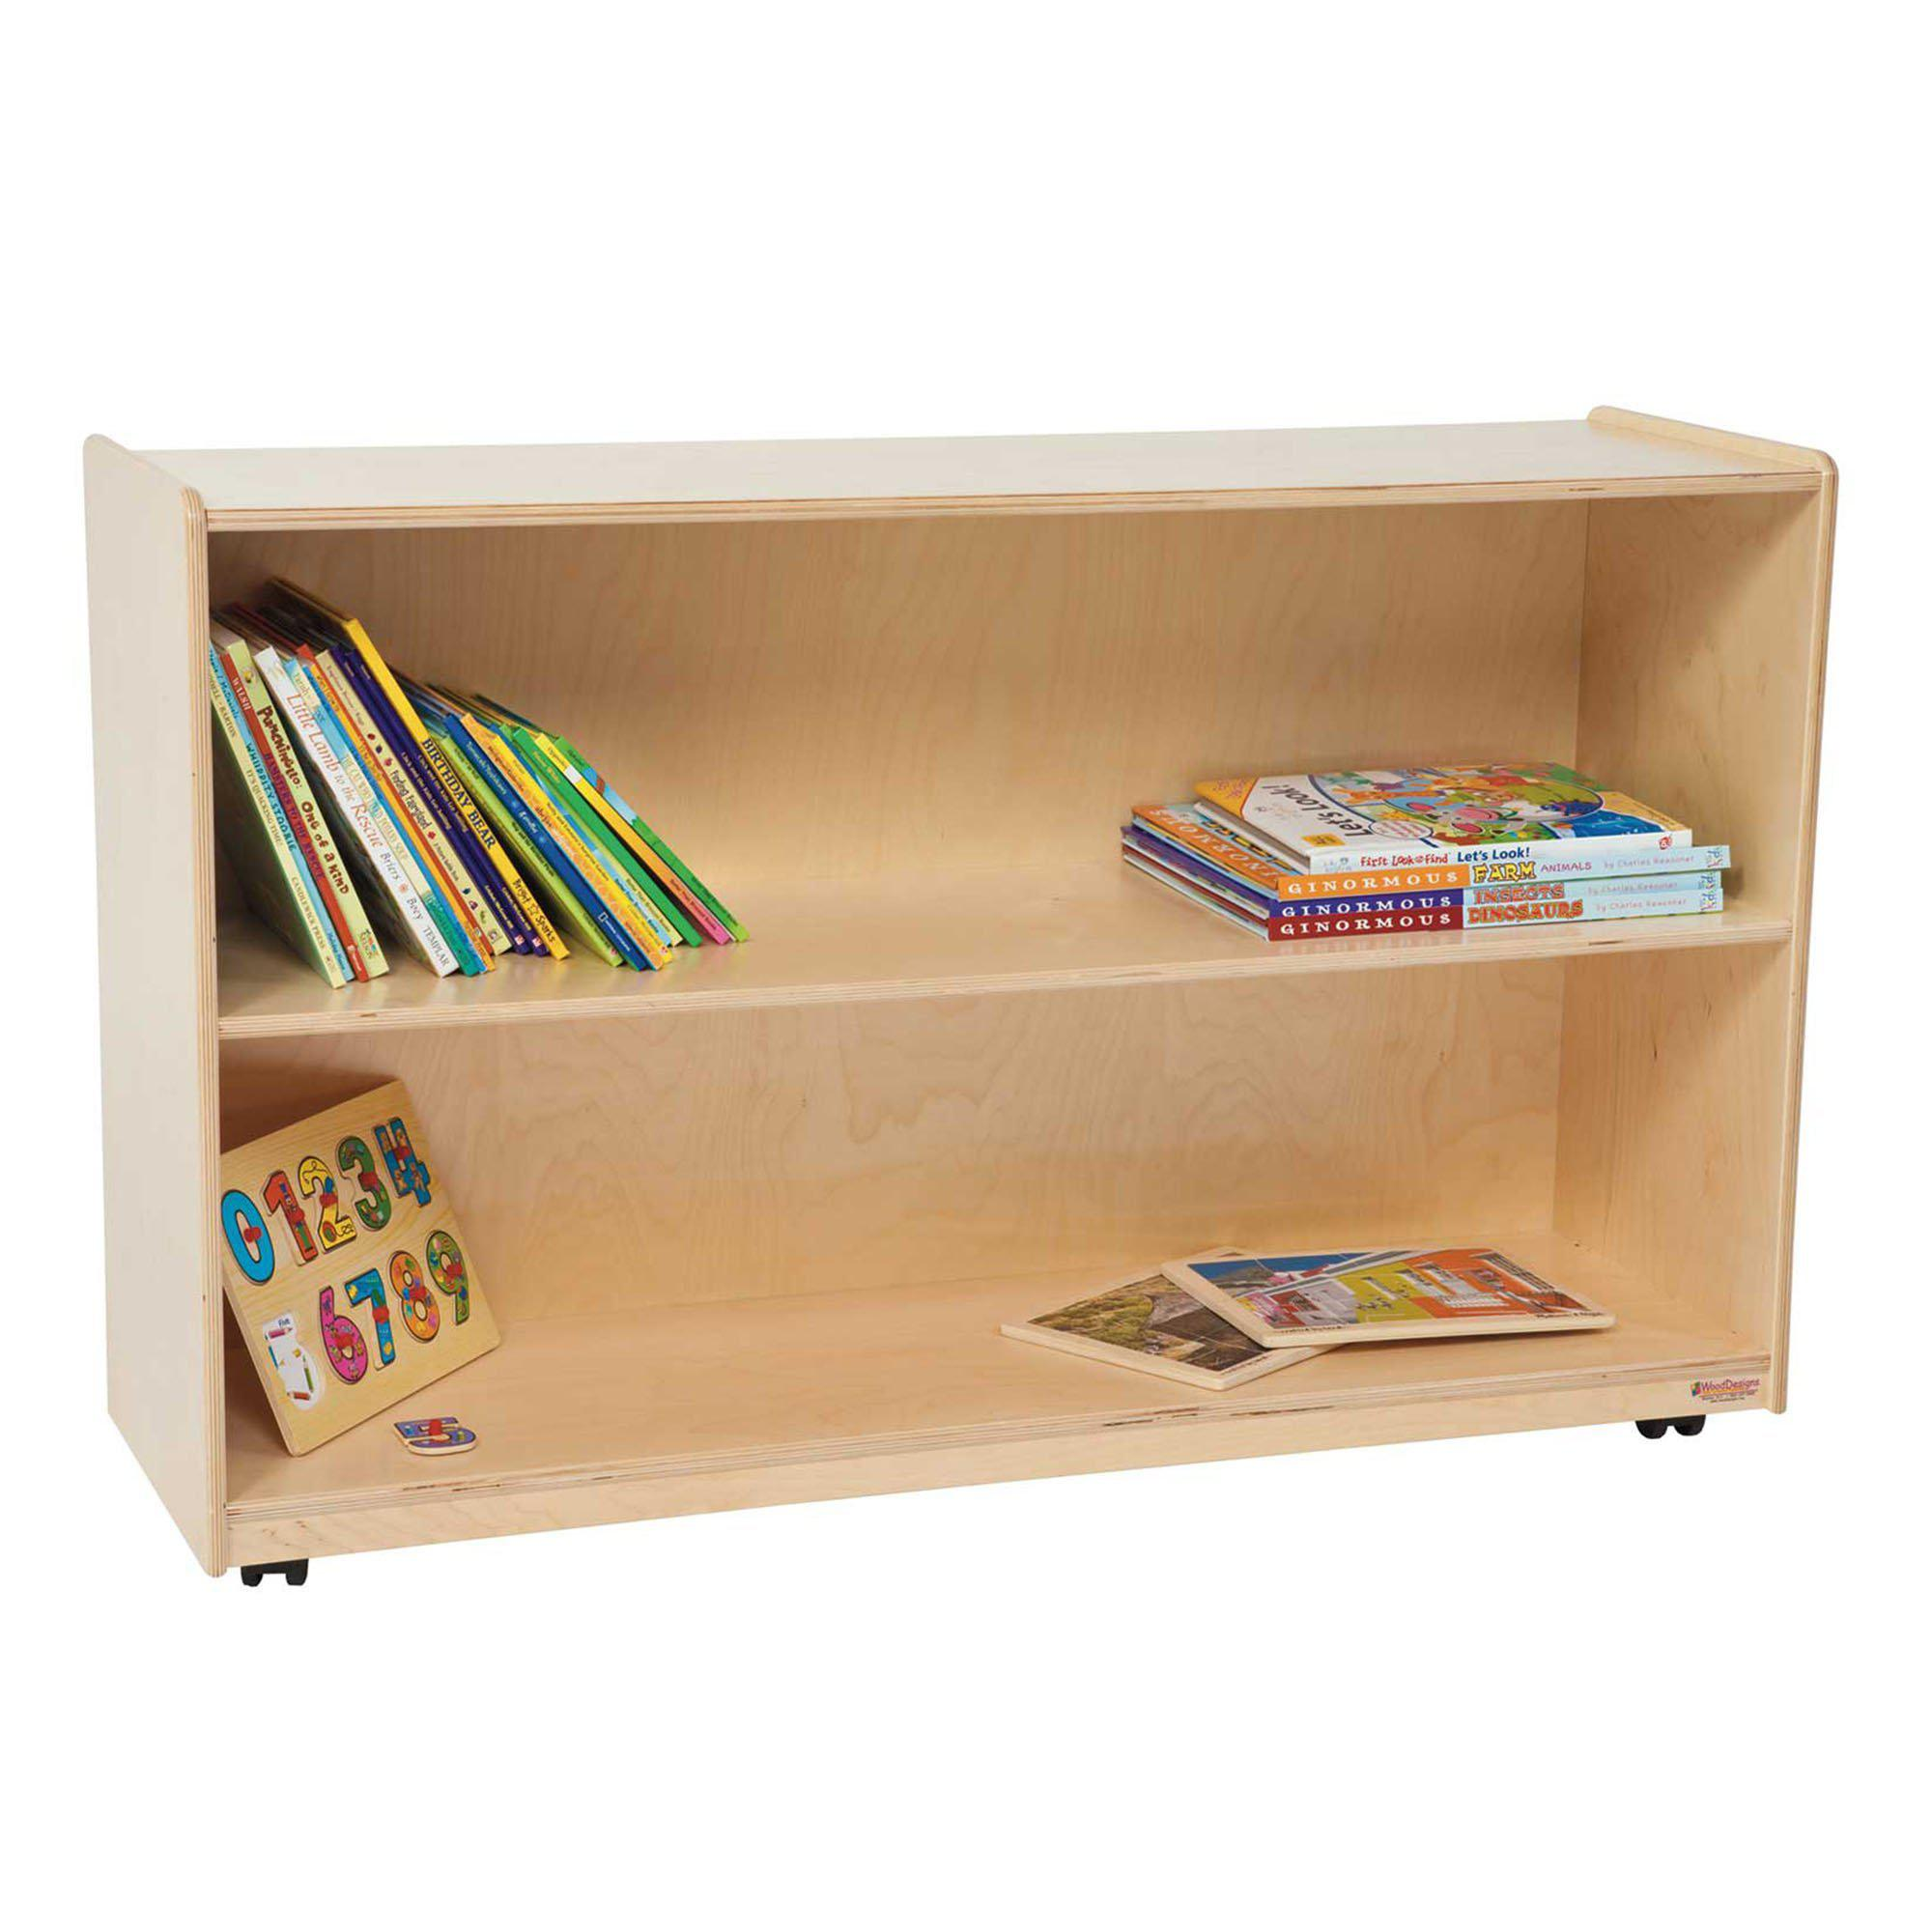 Wood Designs Shelf Storage